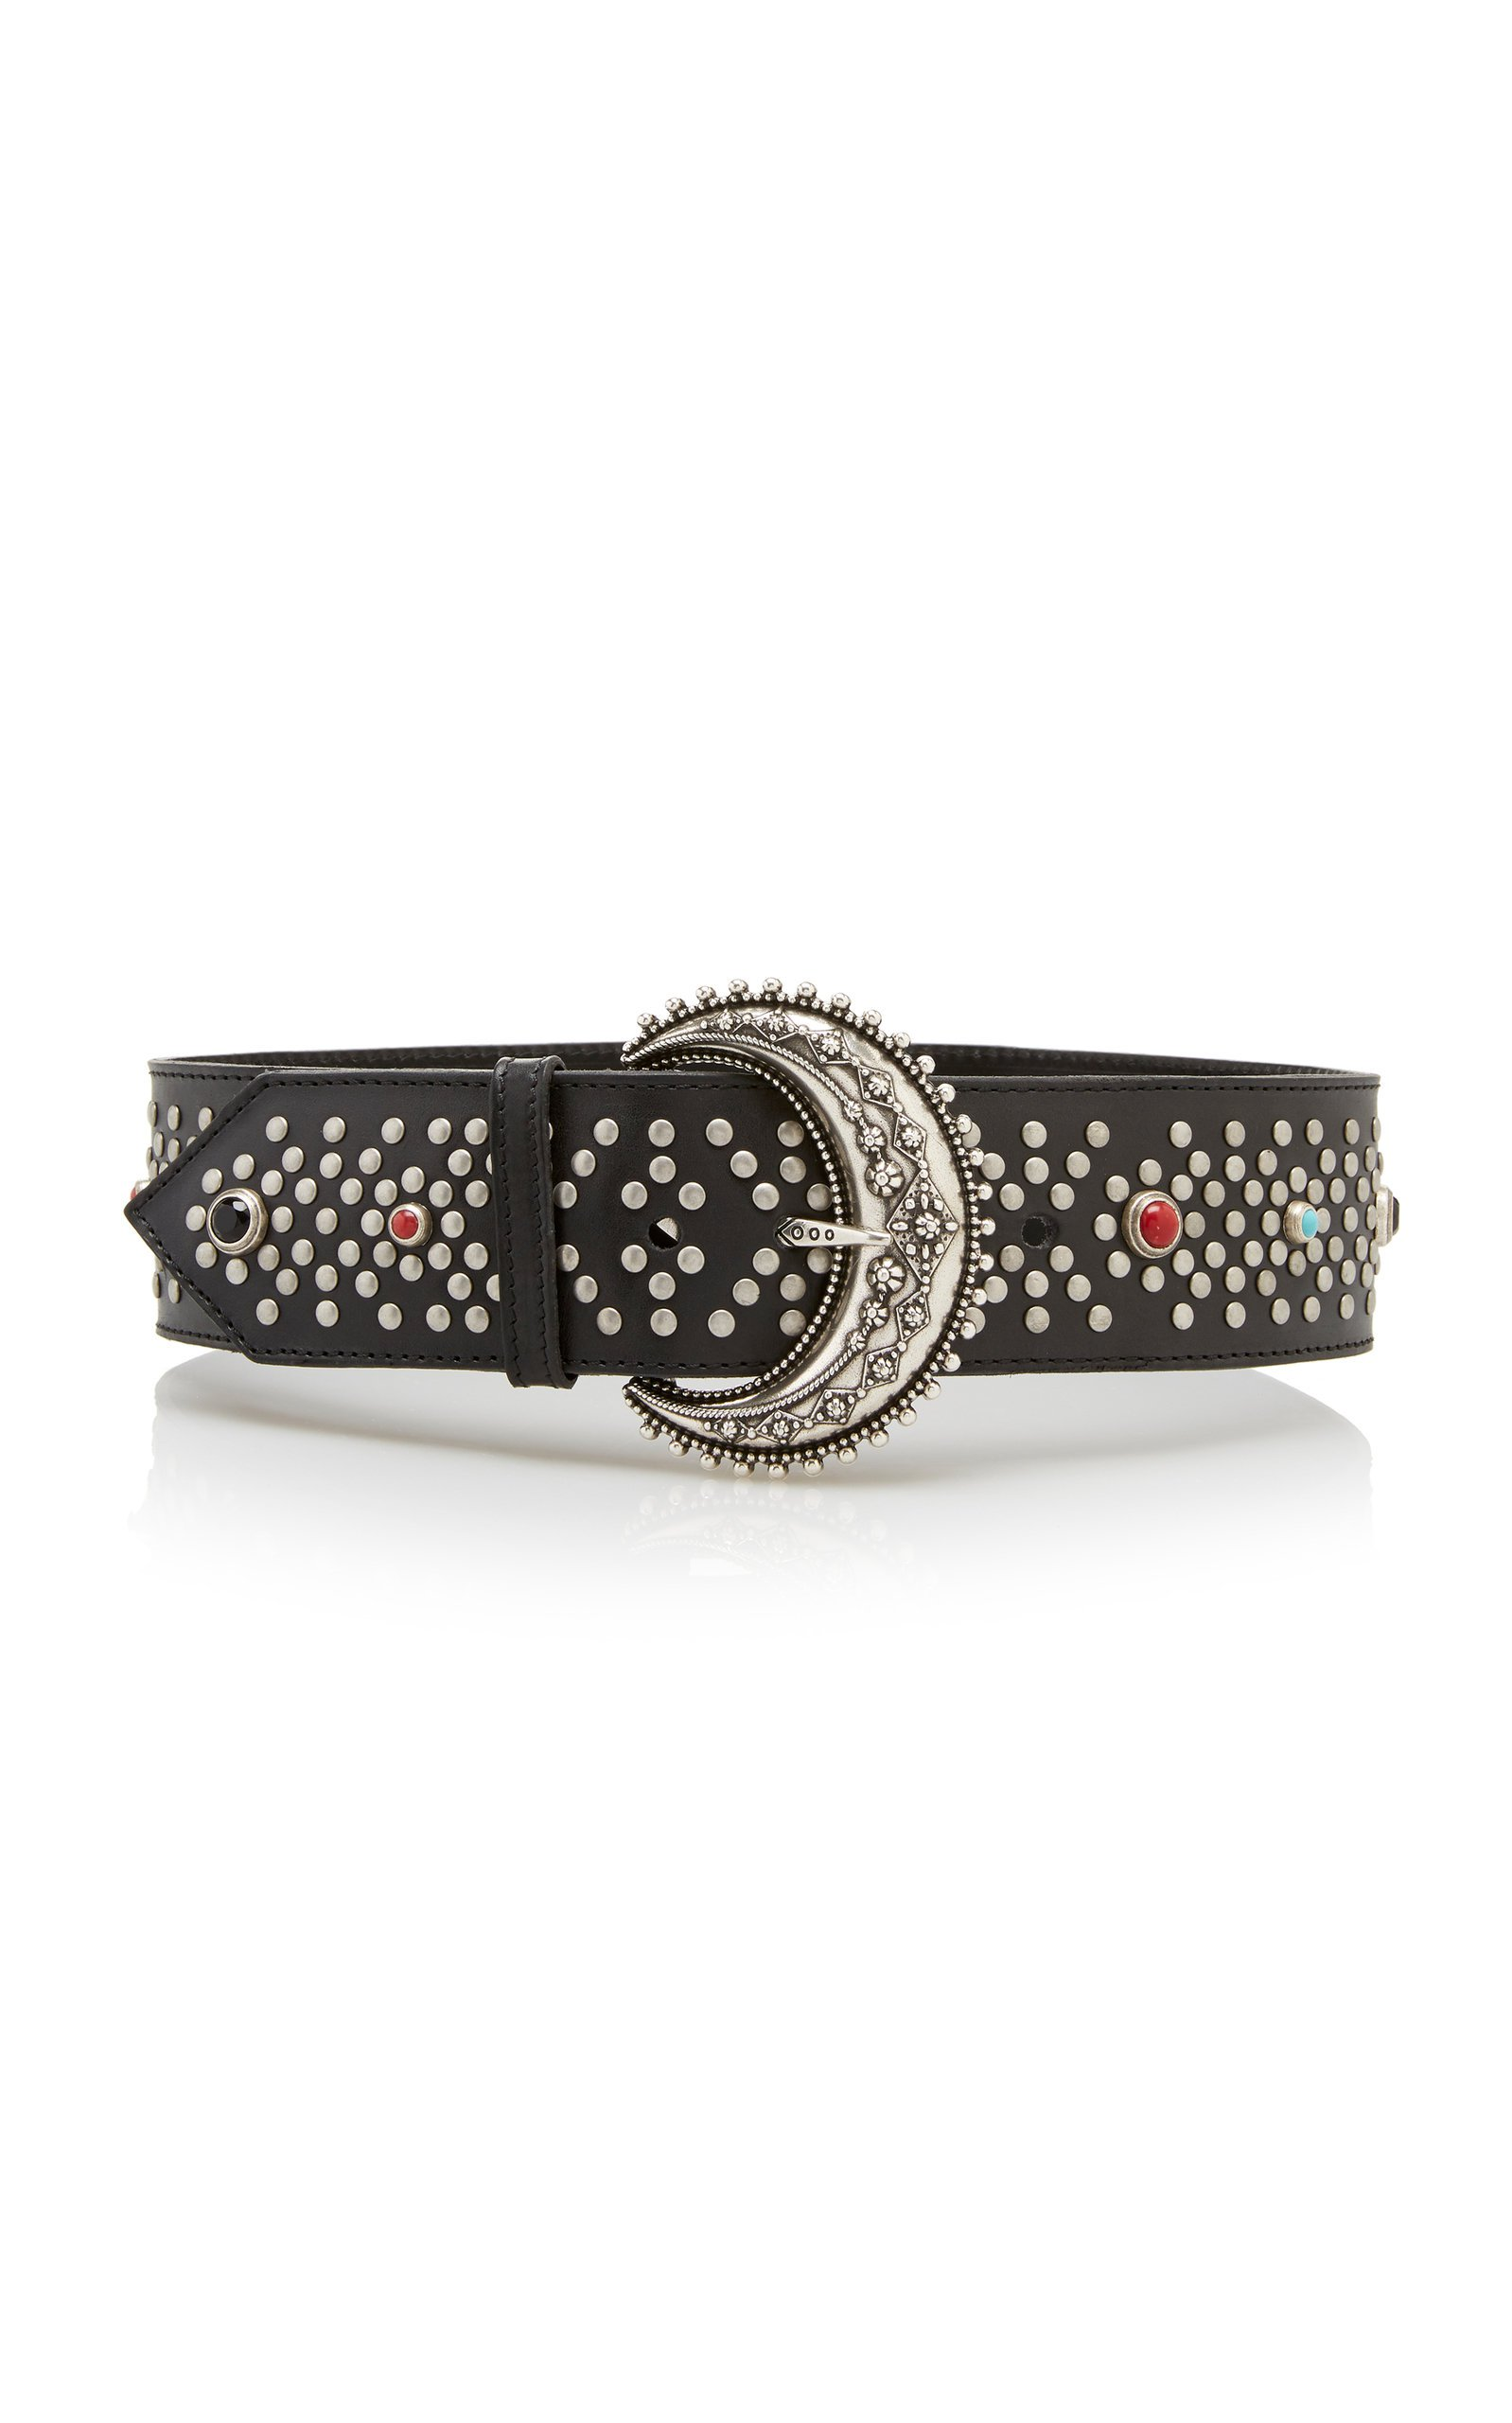 Etro Wide Studded Leather Belt Size: S